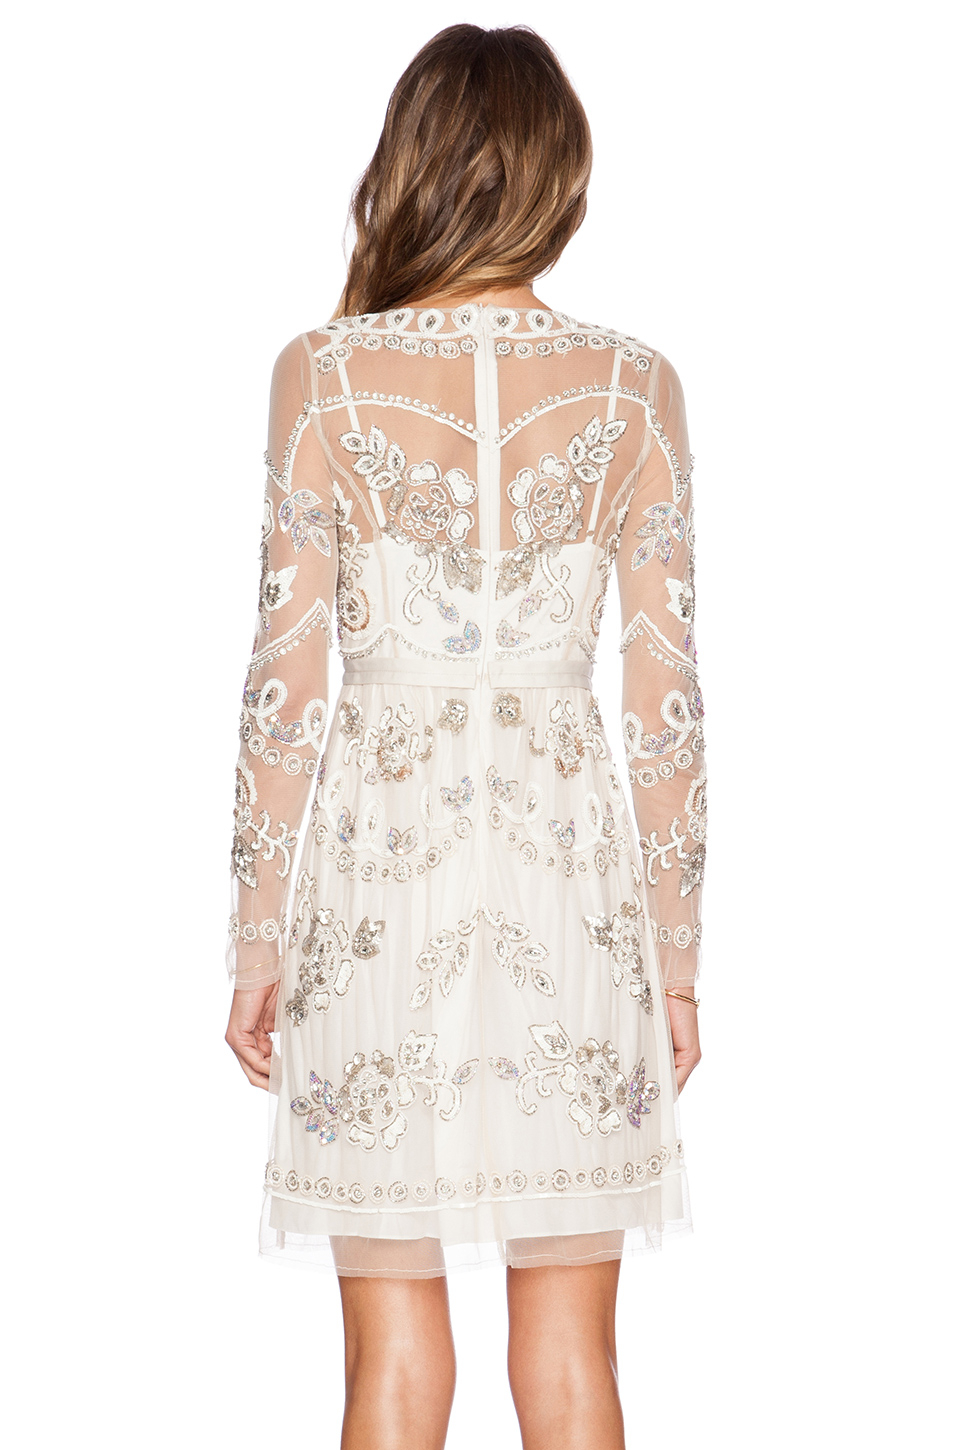 Needle Amp Thread Floral Garden Sequined Dress Lyst